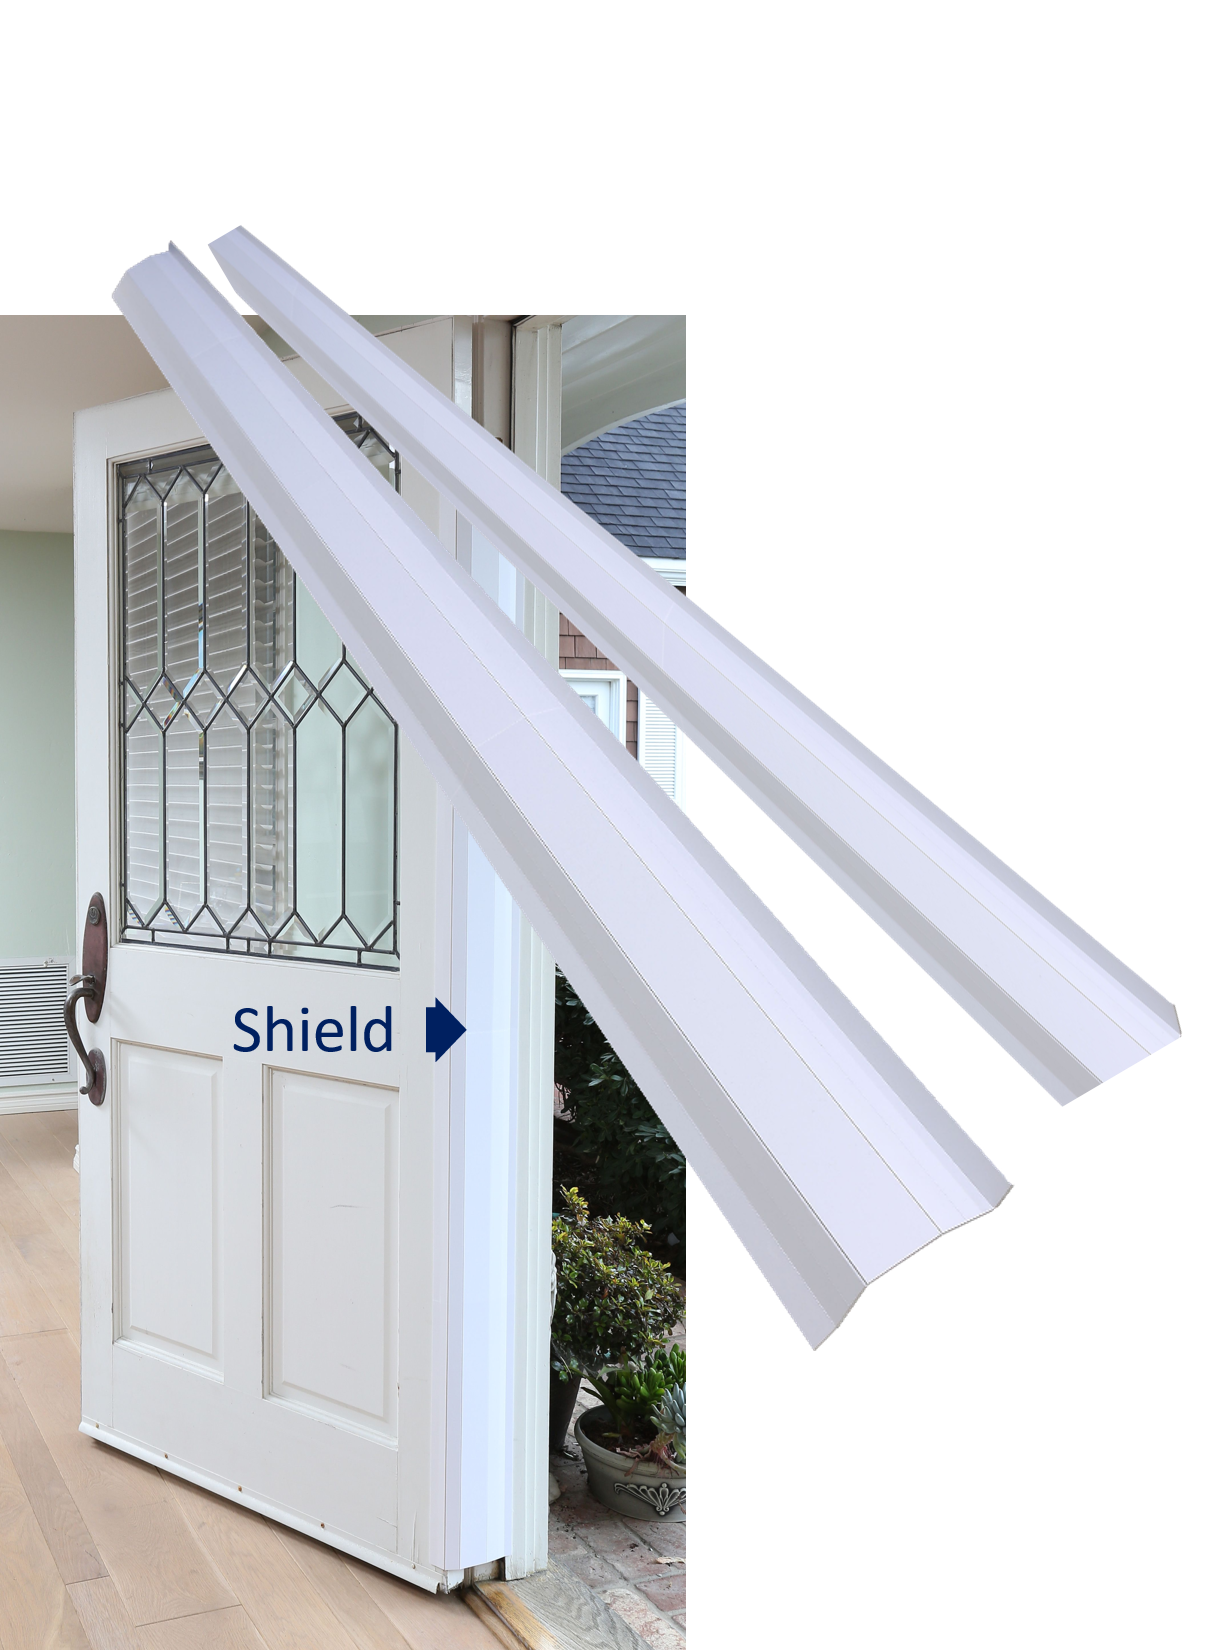 Pinch-Not Home Shield for 180 Degree Doors (Set) - Guard for Door Finger Child Safety. By Carlsbad Safety Products